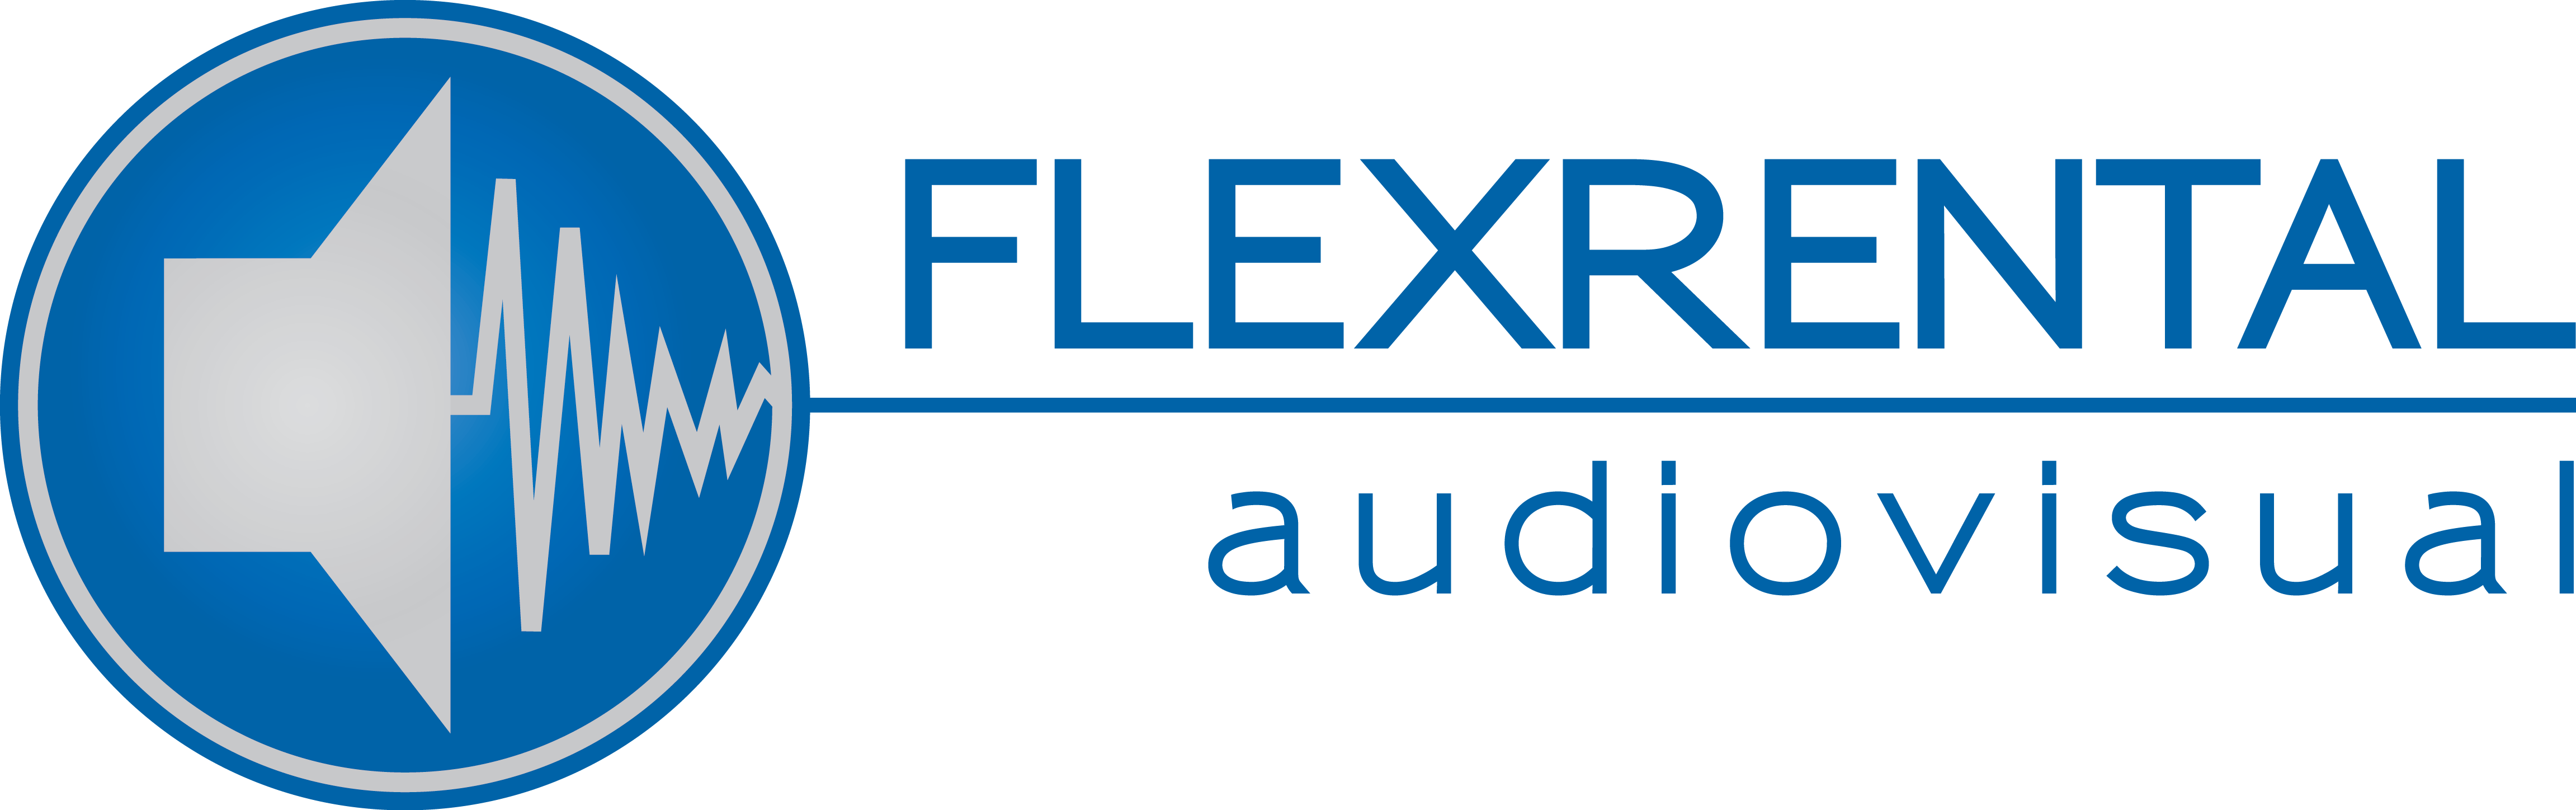 Flexrental